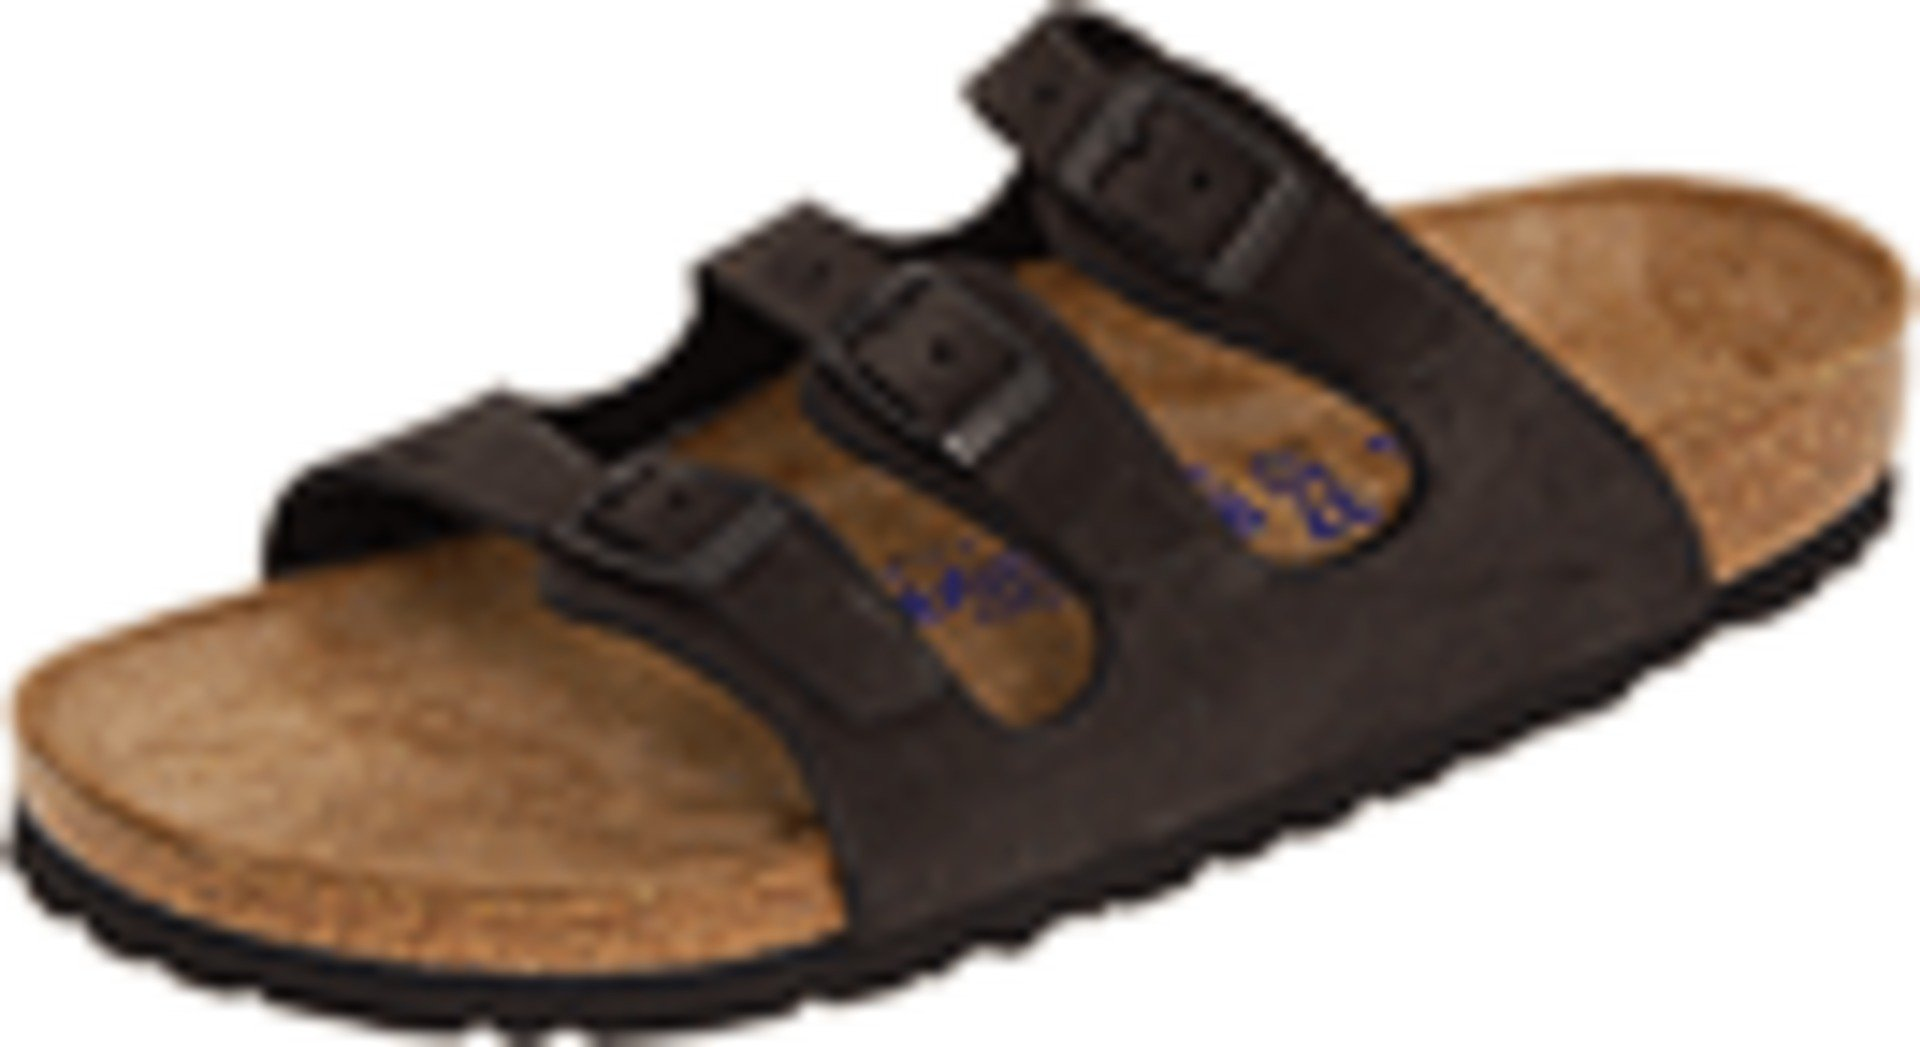 Birkenstock Women's Florida Soft Footbed Birko-Flor  Black Nubuck Sandals - 38 M EU / 7-7.5 B(M) US